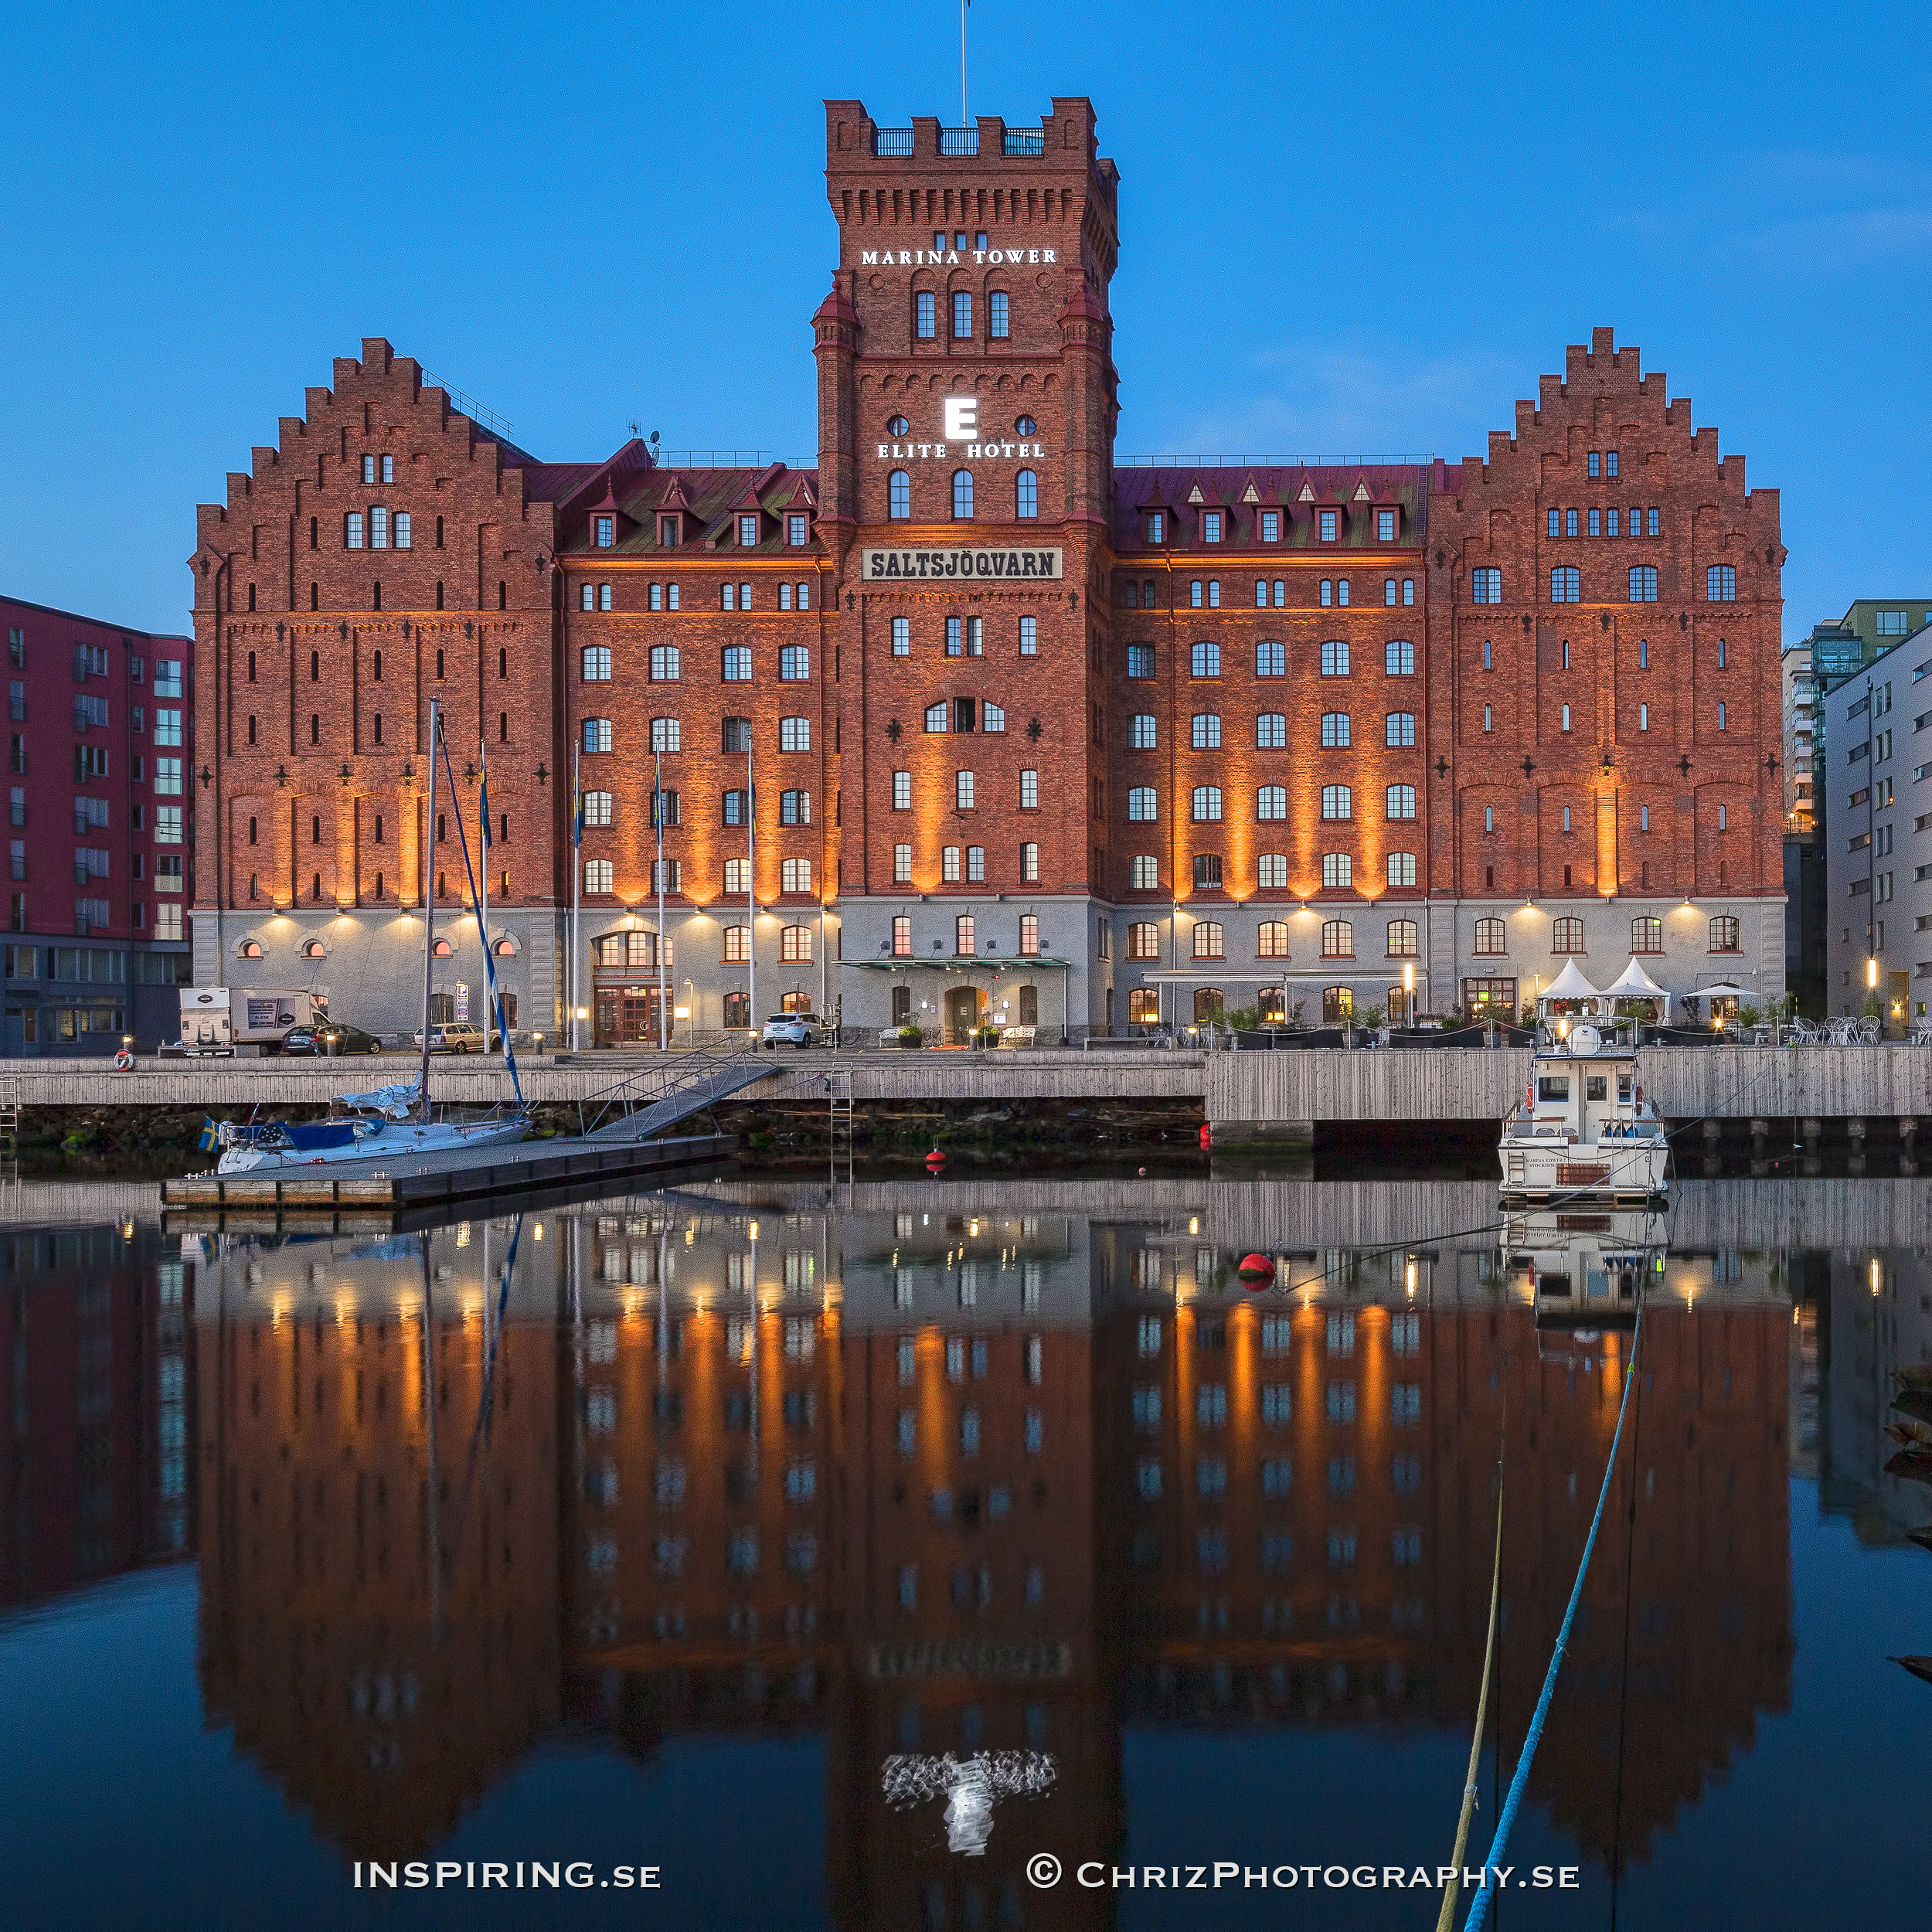 Elite_Hotel_Marina_Tower_Inspiring.se_copyright_ChrizPhotography.se_41.jpg